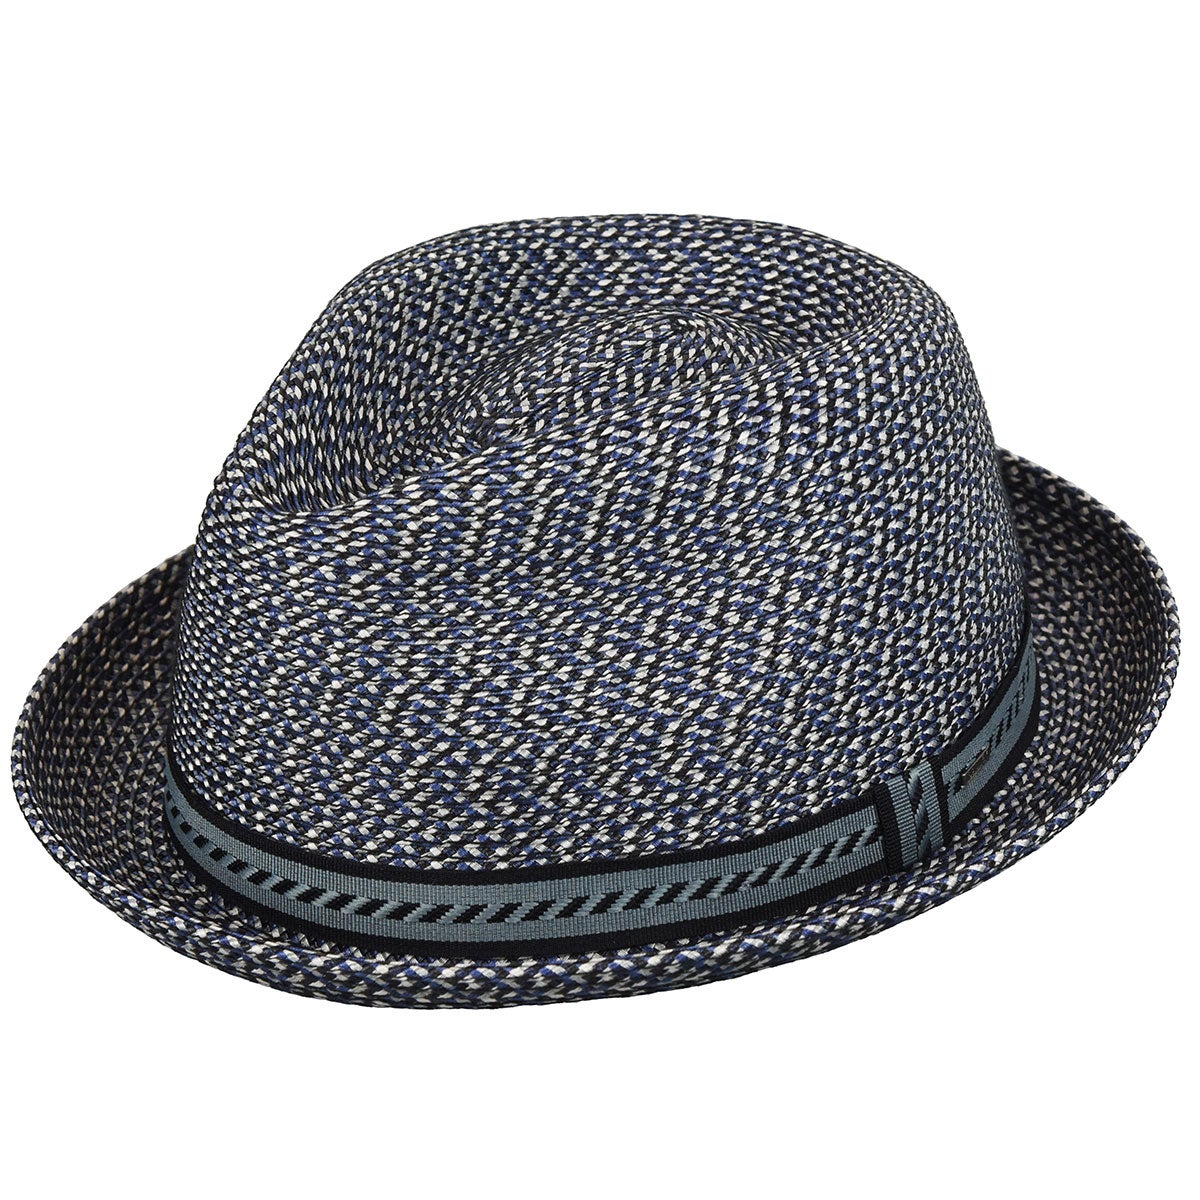 1960s – 70s Style Men's Hats Mannes Braided Trilby $66.00 AT vintagedancer.com